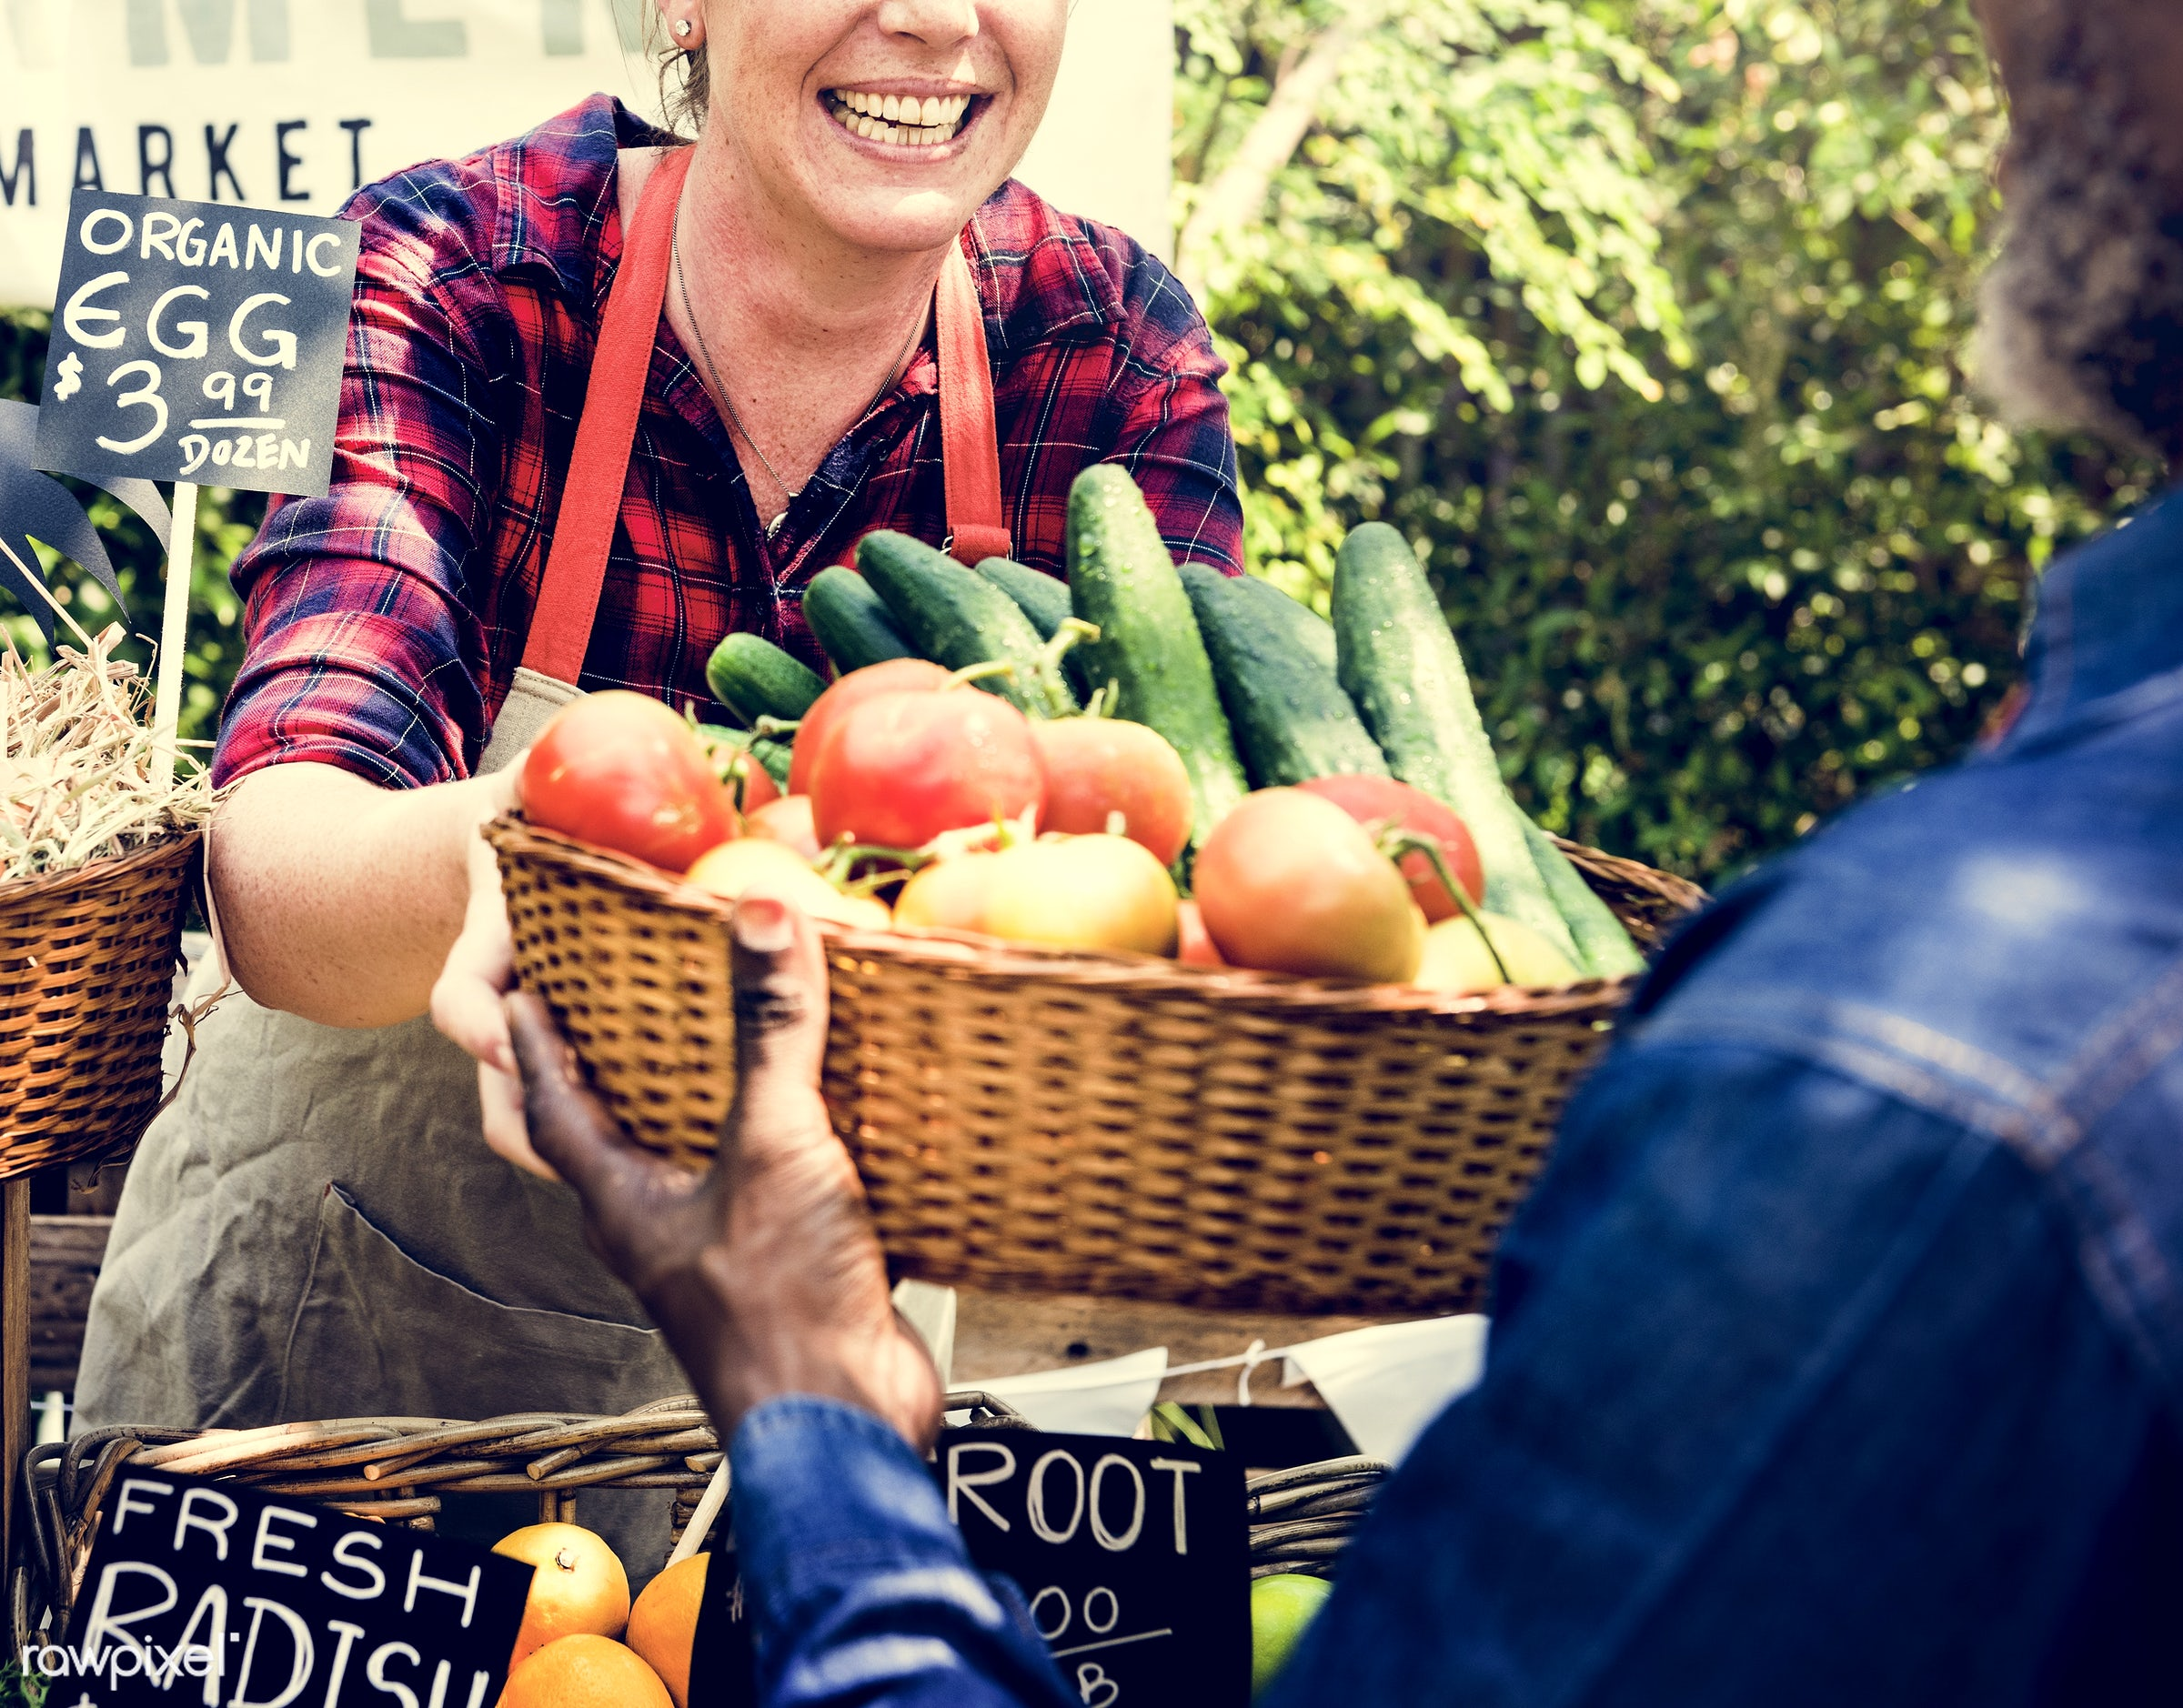 grocery, person, stall, store, customer, people, lifestyle, smiling, fruit, selling, health, nutrition, gardener, market,...